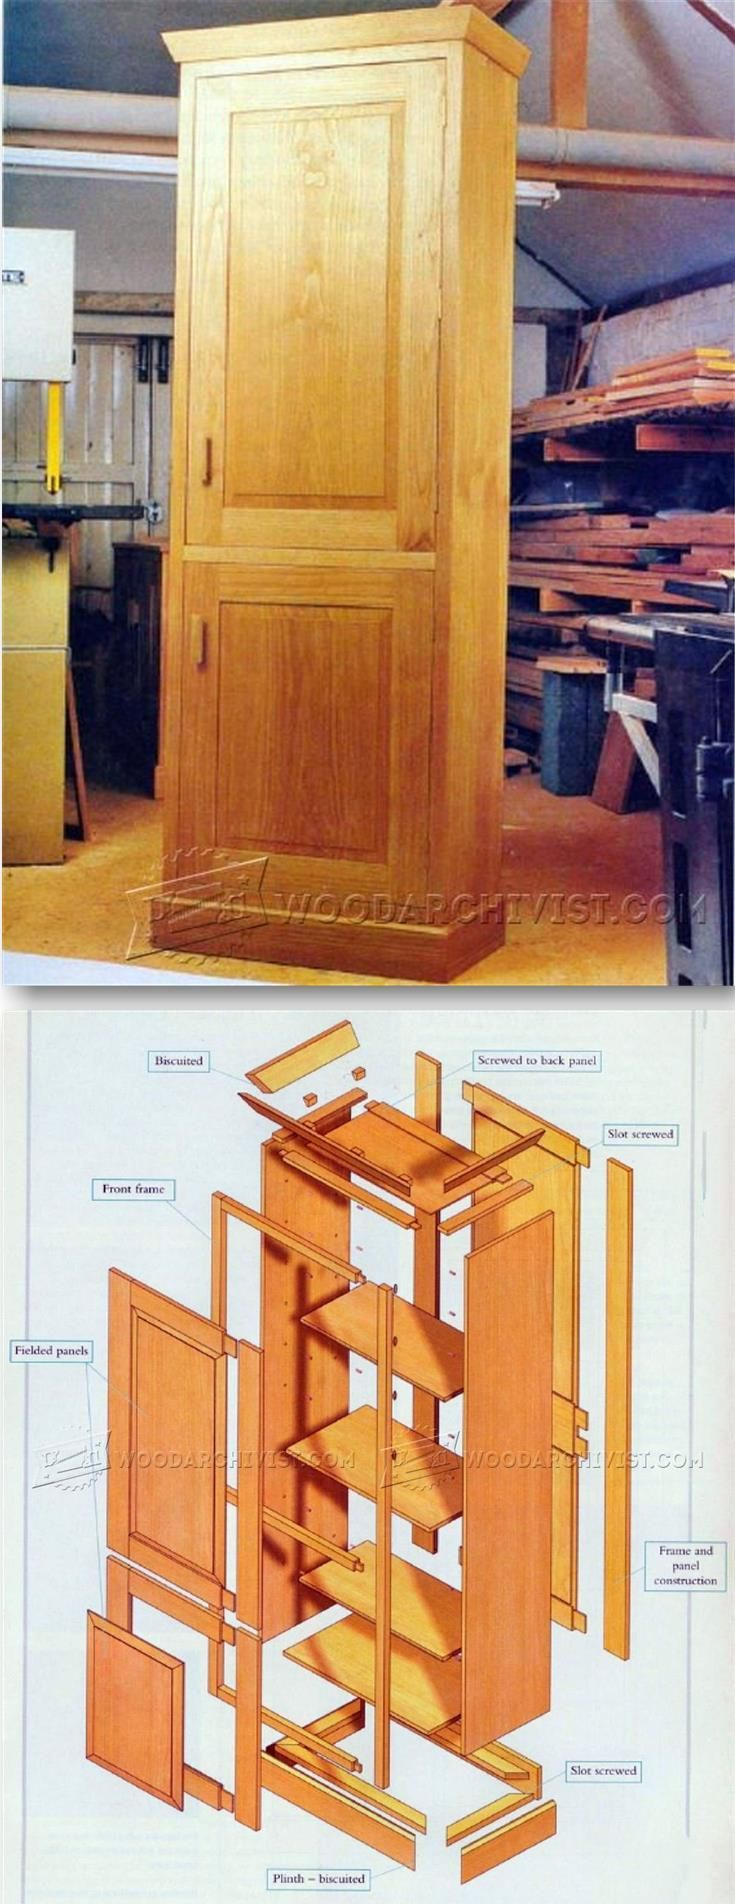 Tall Cabinet Plans Furniture Plans And Projects Woodarchivist